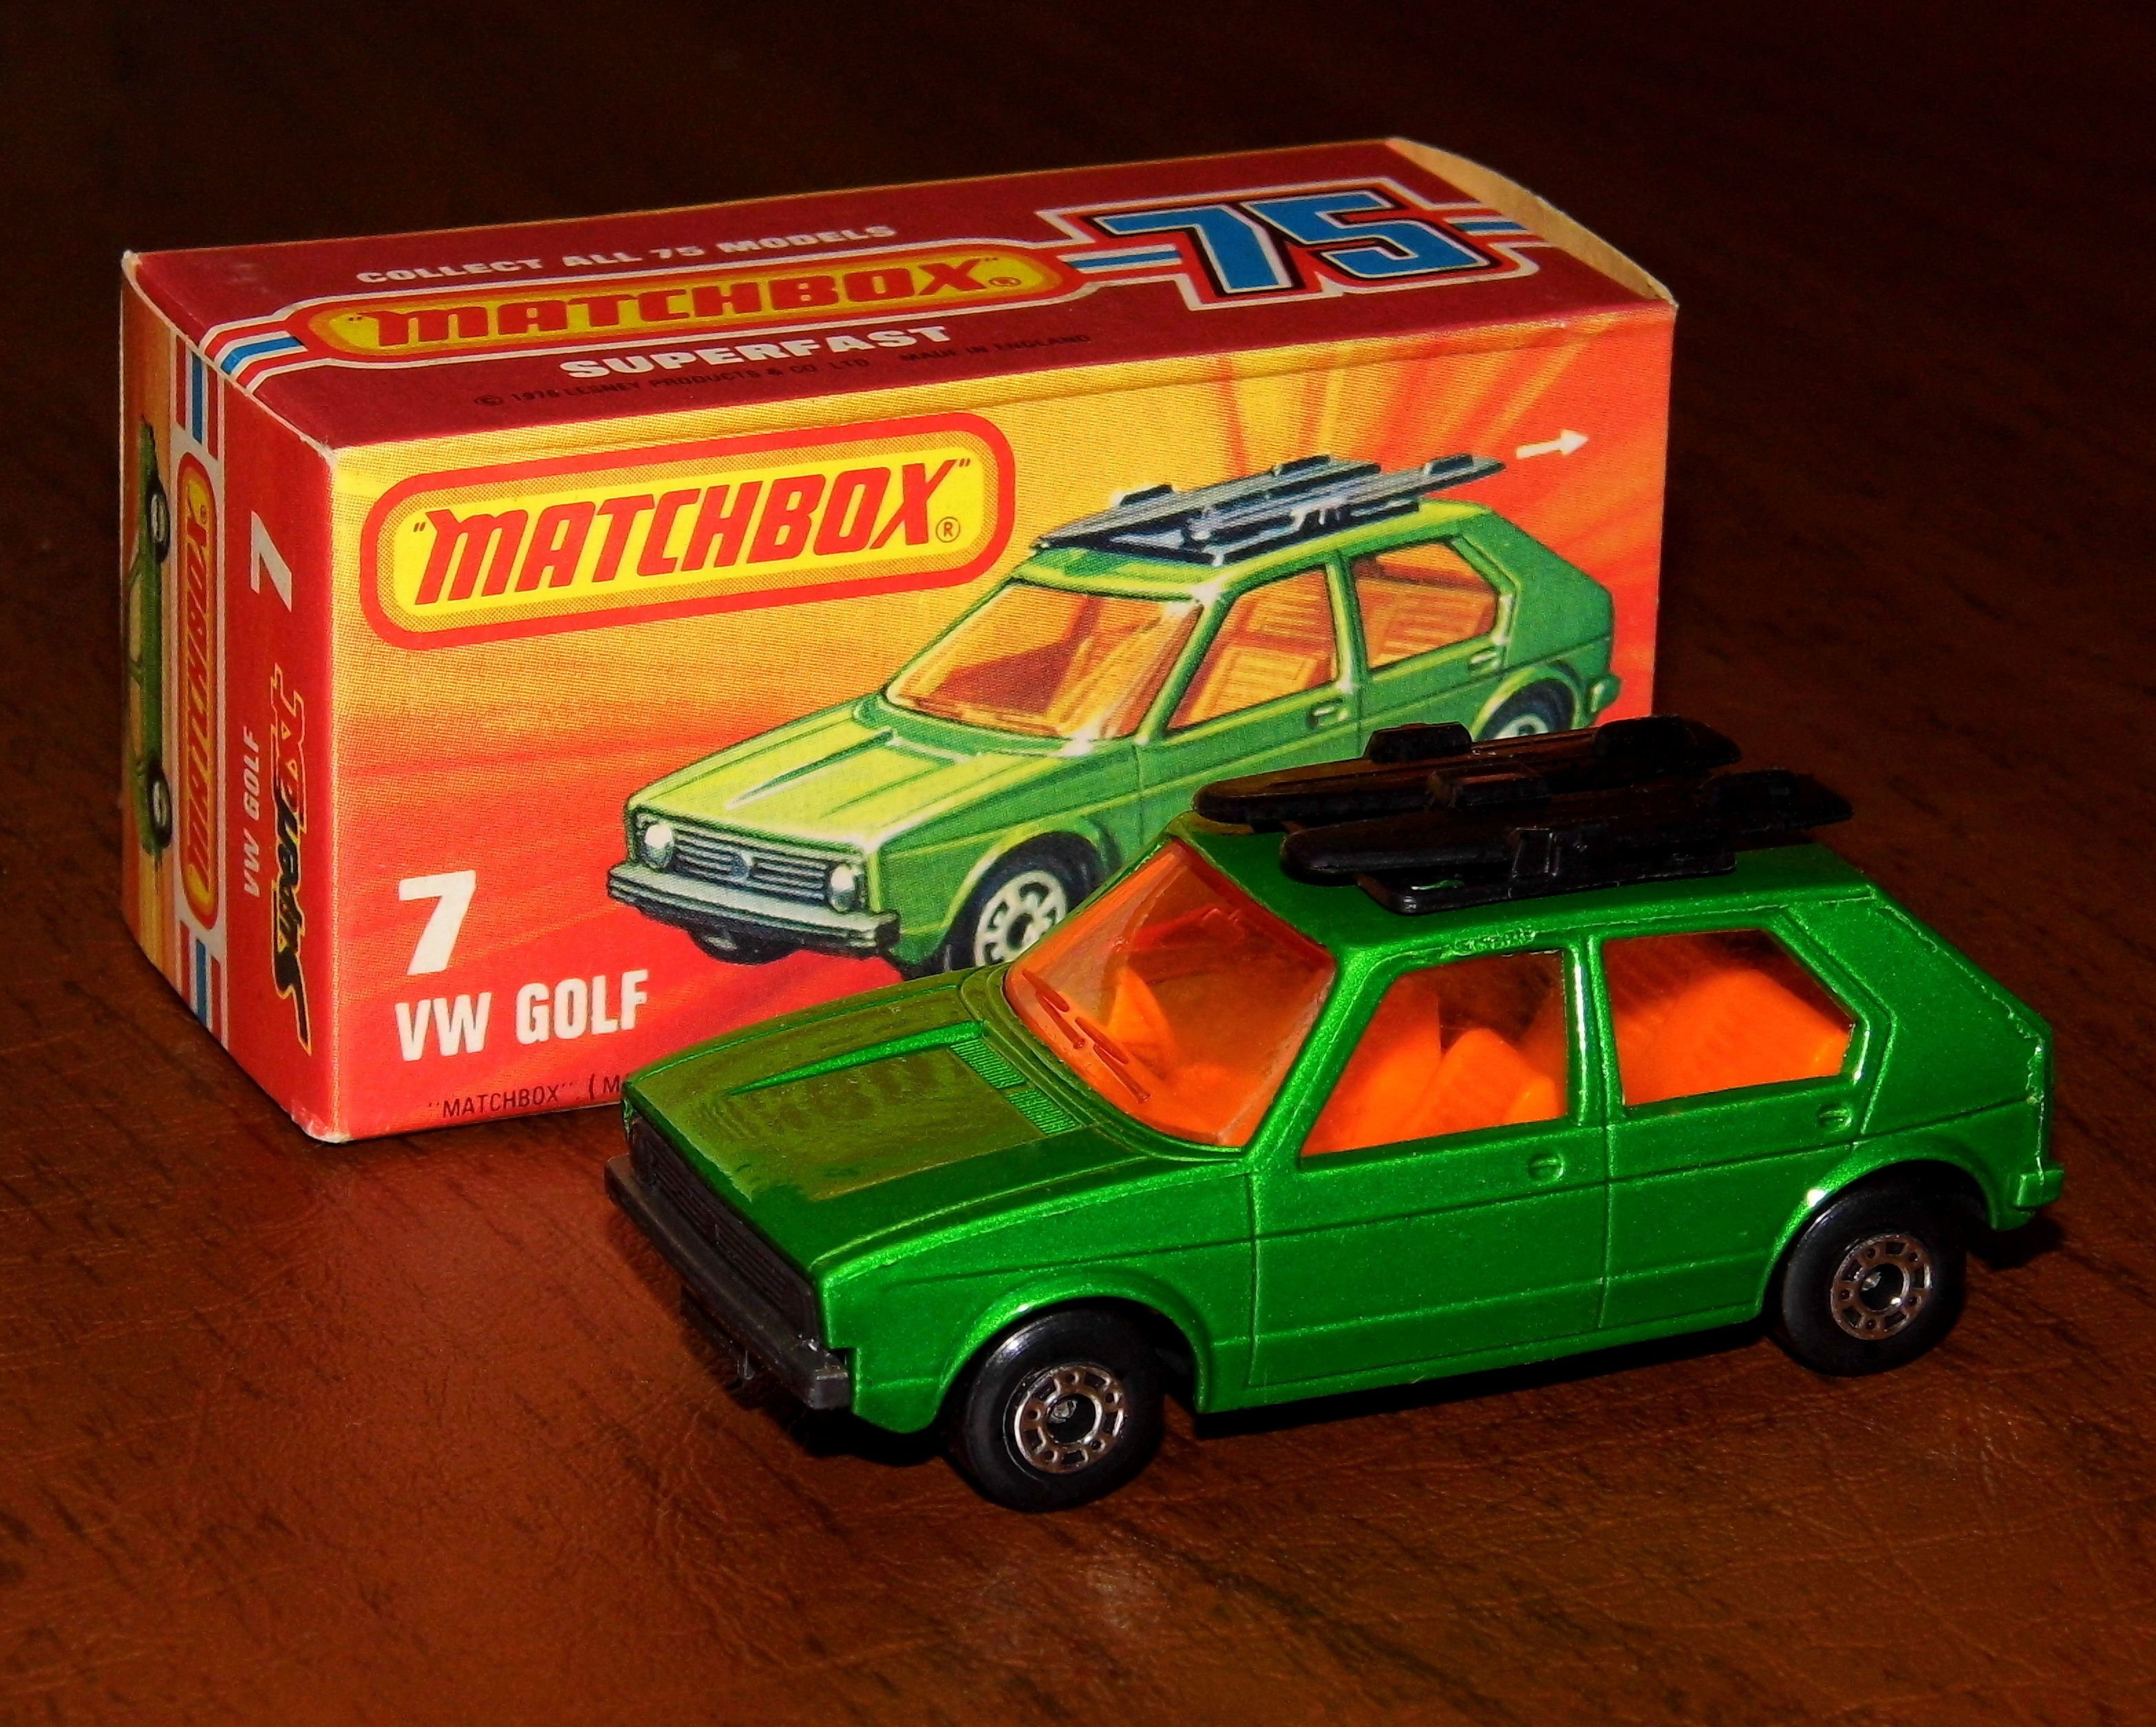 The 3 Toys That Made This Year's Toy Hall of Fame Class